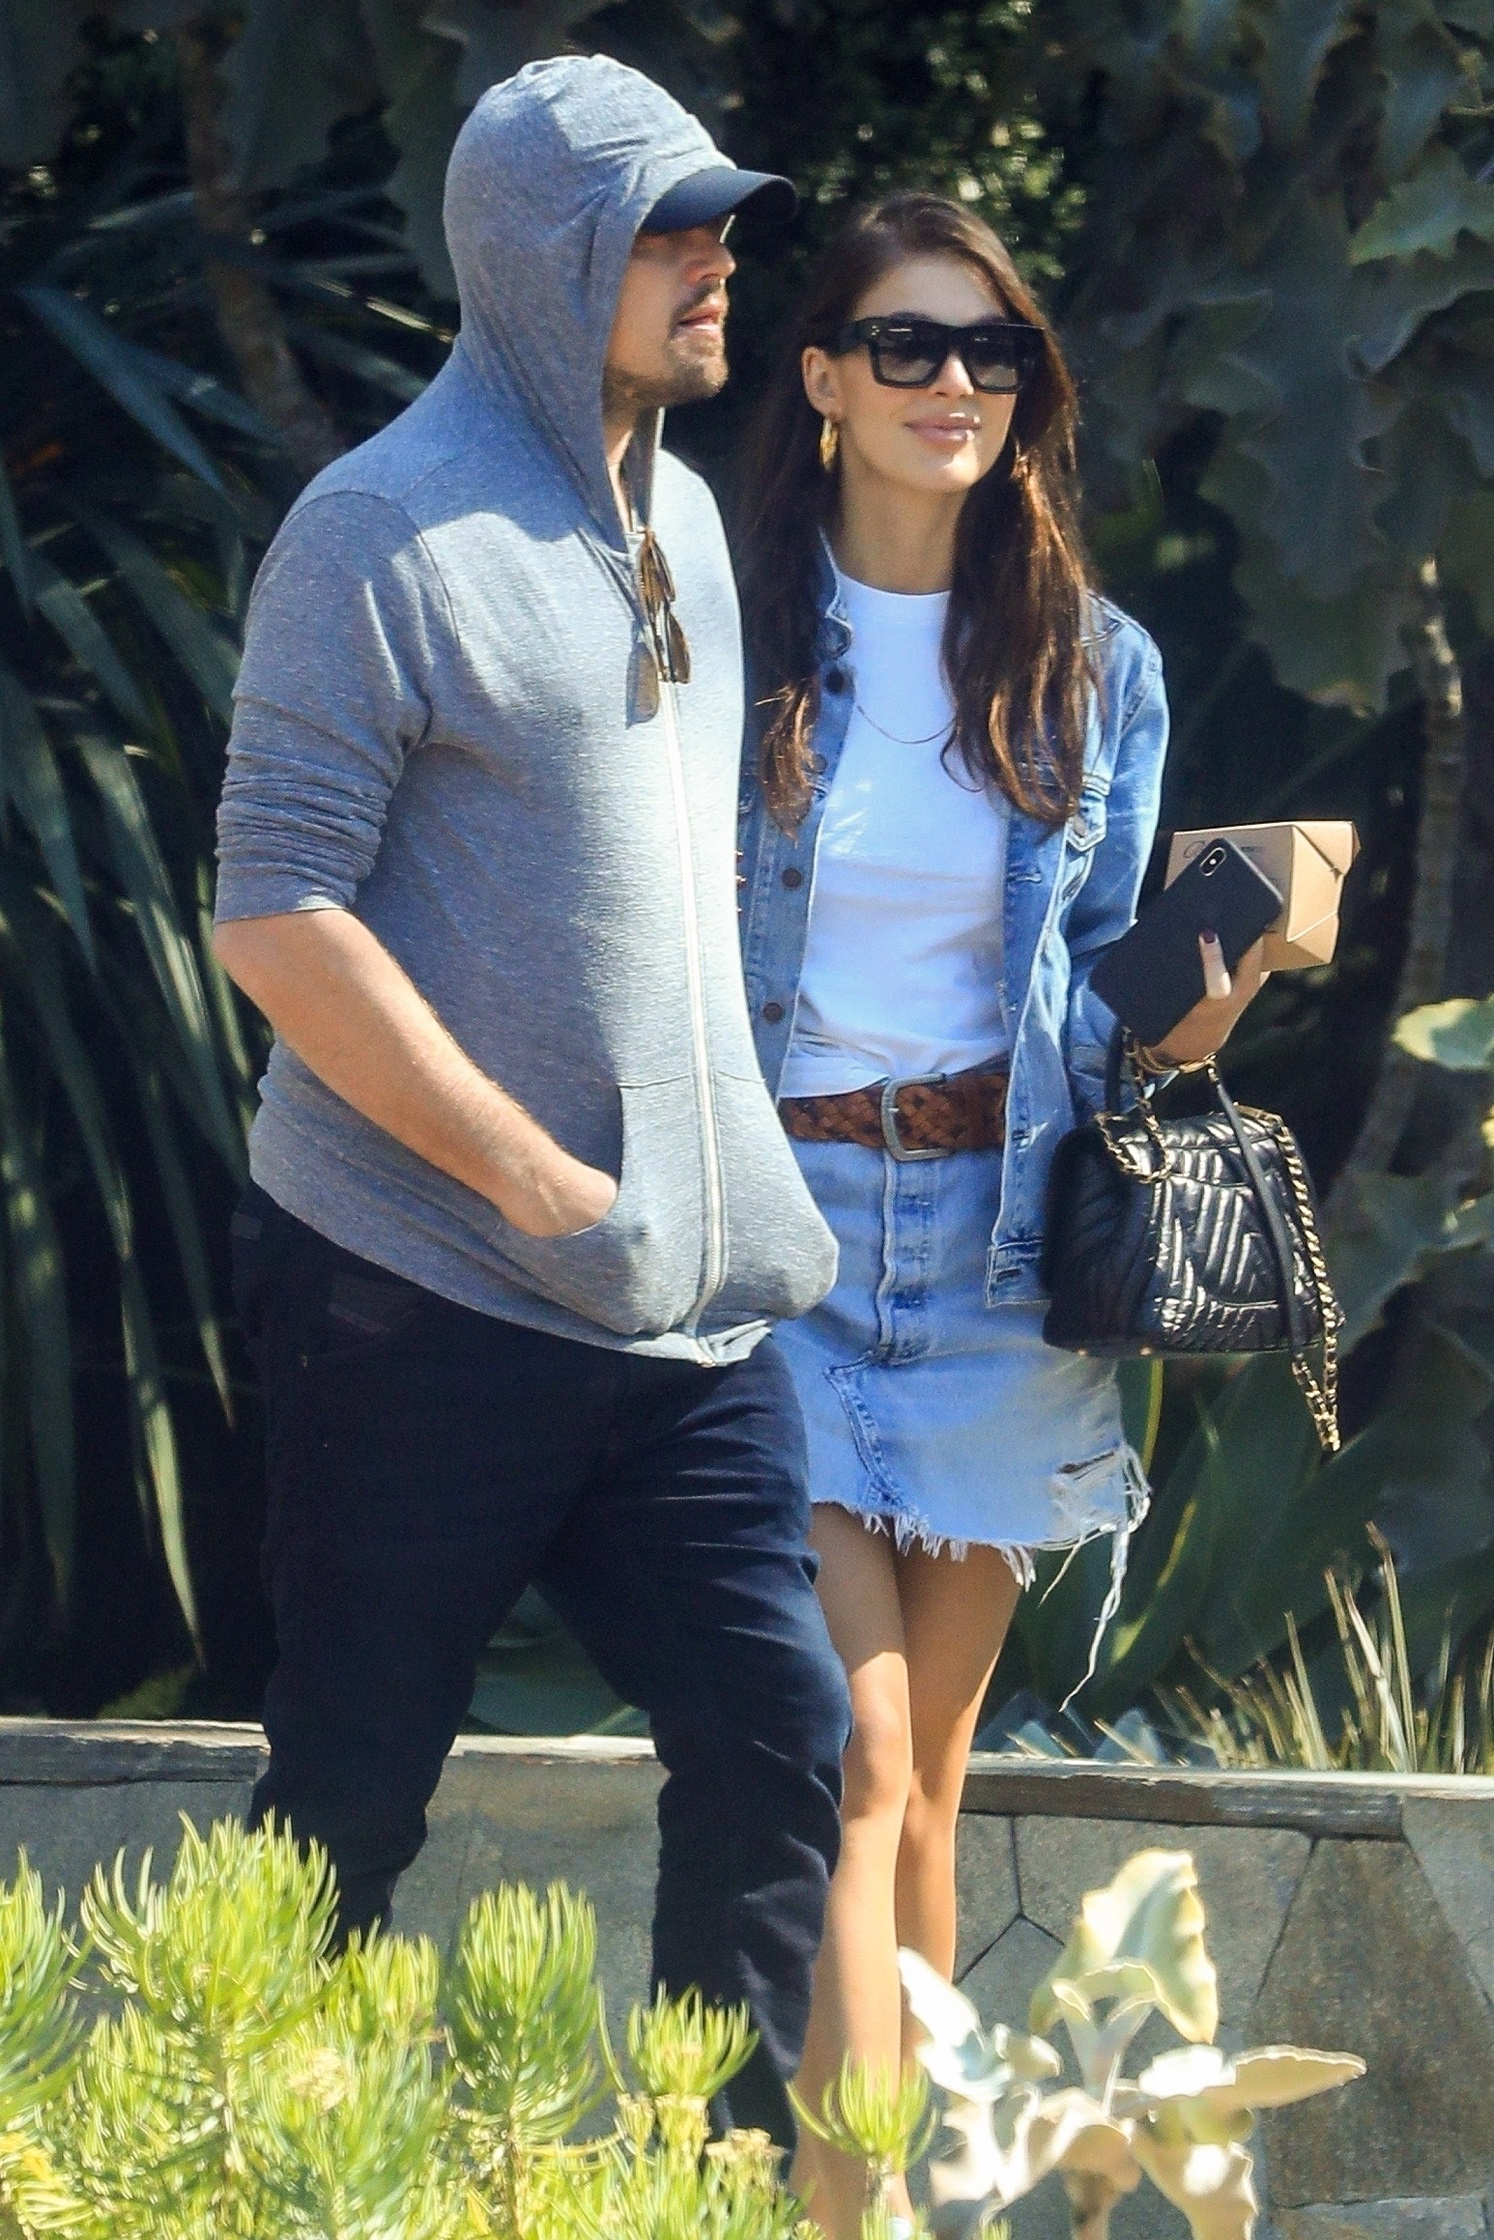 *EXCLUSIVE* West Hollywood, CA  - Leonardo DiCaprio attempts to go incognito as he and girlfriend Camila Morrone go shopping on Melrose Place in West Hollywood together. Leo wears his usual baseball cap and hoody as he hides his famous face while out on the town with his Argentine model and actress girlfriend.  Pictured: Leonardo DiCaprio, Camila Morrone    *UK Clients - Pictures Containing Children Please Pixelate Face Prior To Publication*,Image: 417981538, License: Rights-managed, Restrictions: , Model Release: no, Credit line: BKGD / GAMR / BACKGRID / Backgrid USA / Profimedia